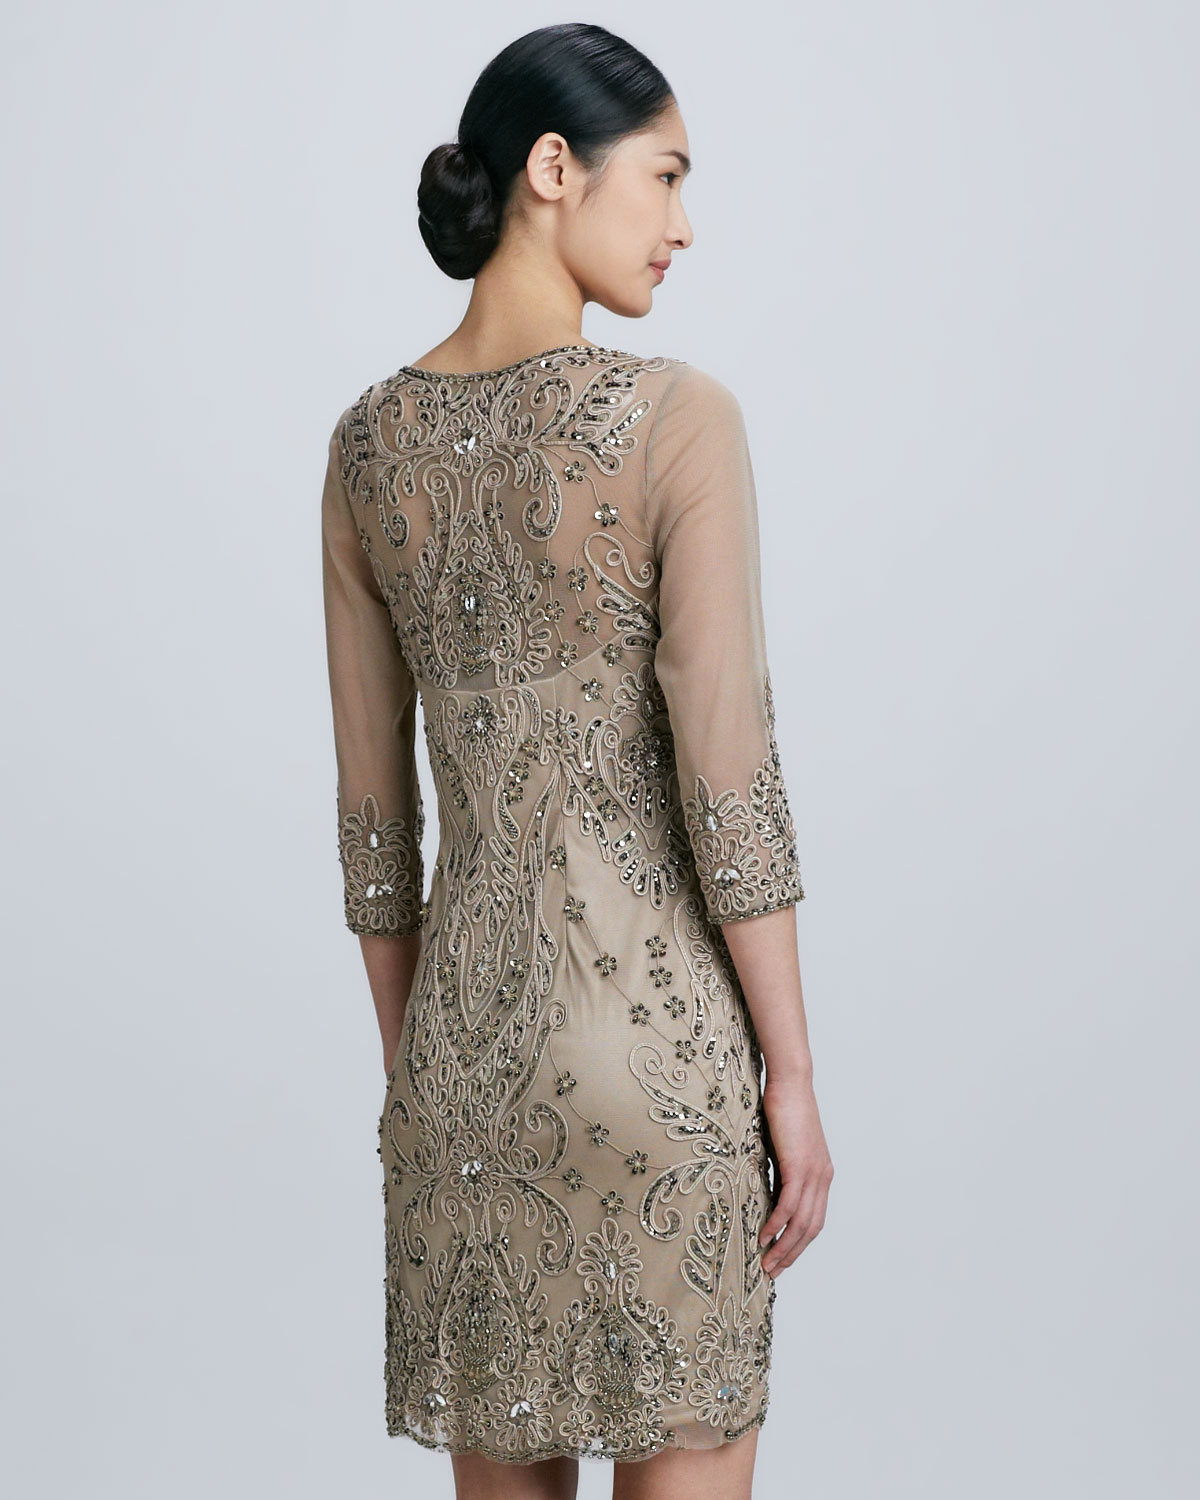 Lyst - Sue wong Threequarter Sleeve Cocktail Dress in Natural